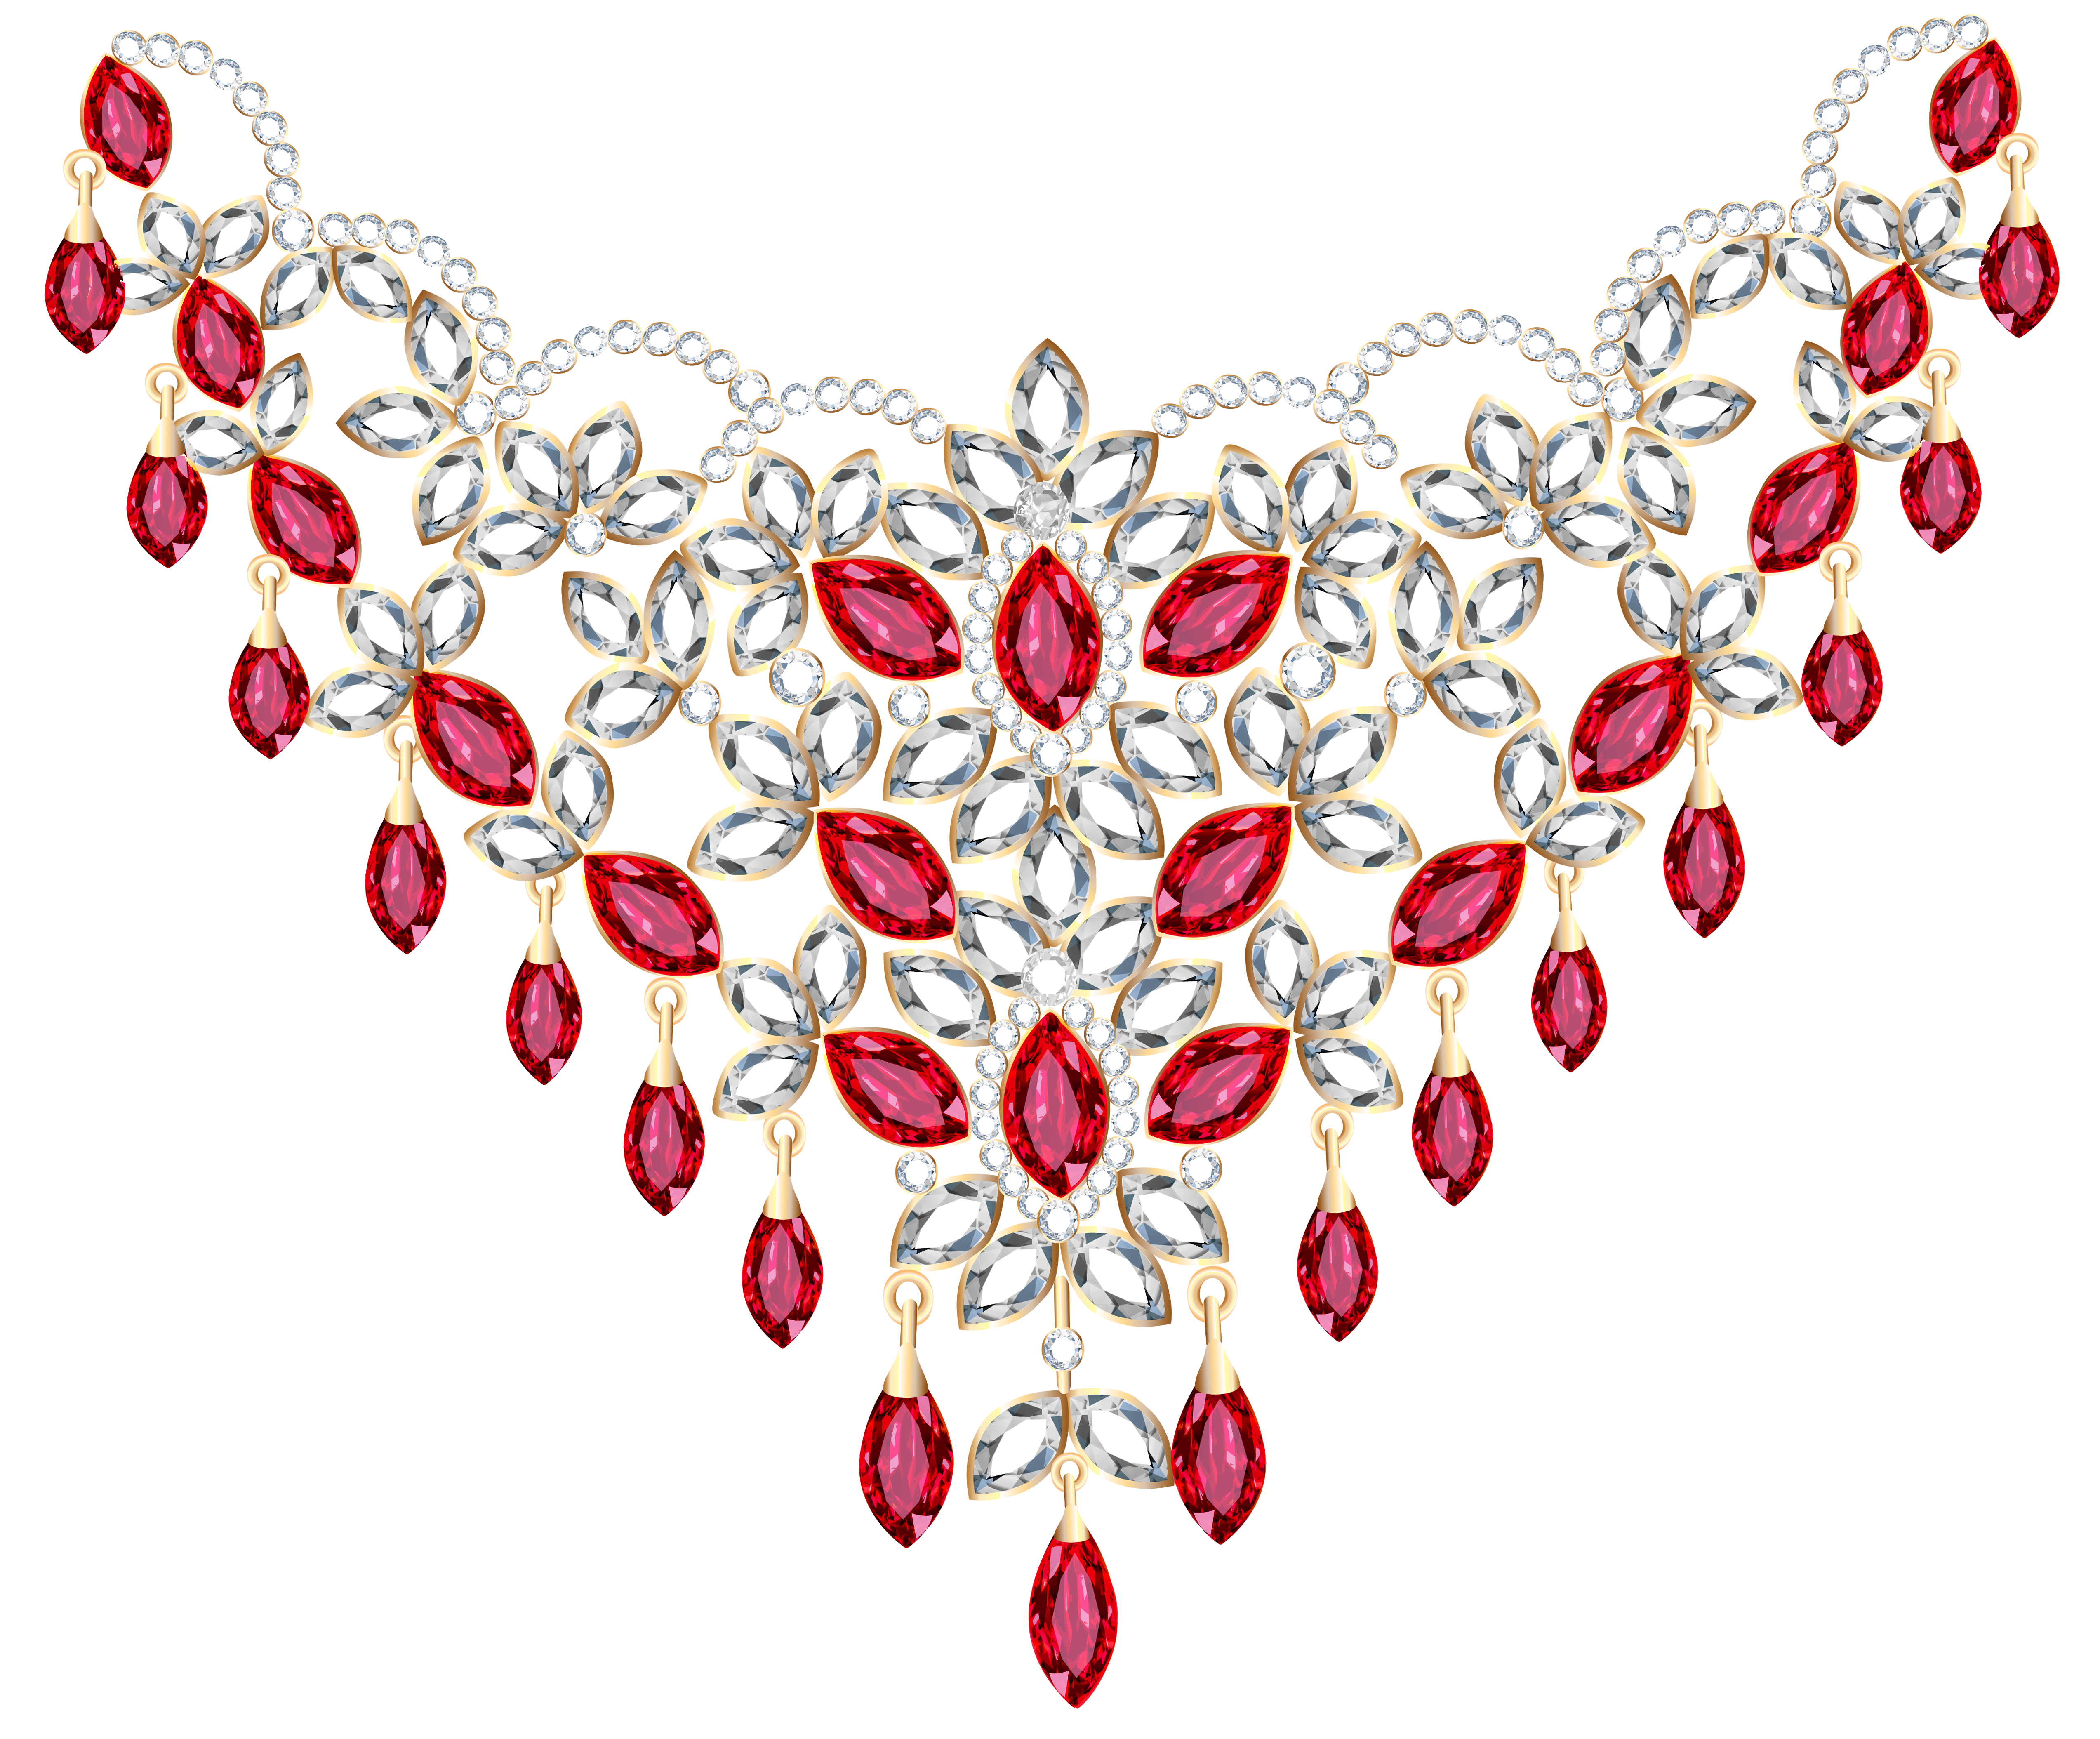 Free clipart for download jpg free stock Transparent Diamond and Ruby Necklace PNG Clipart | Gallery ... jpg free stock